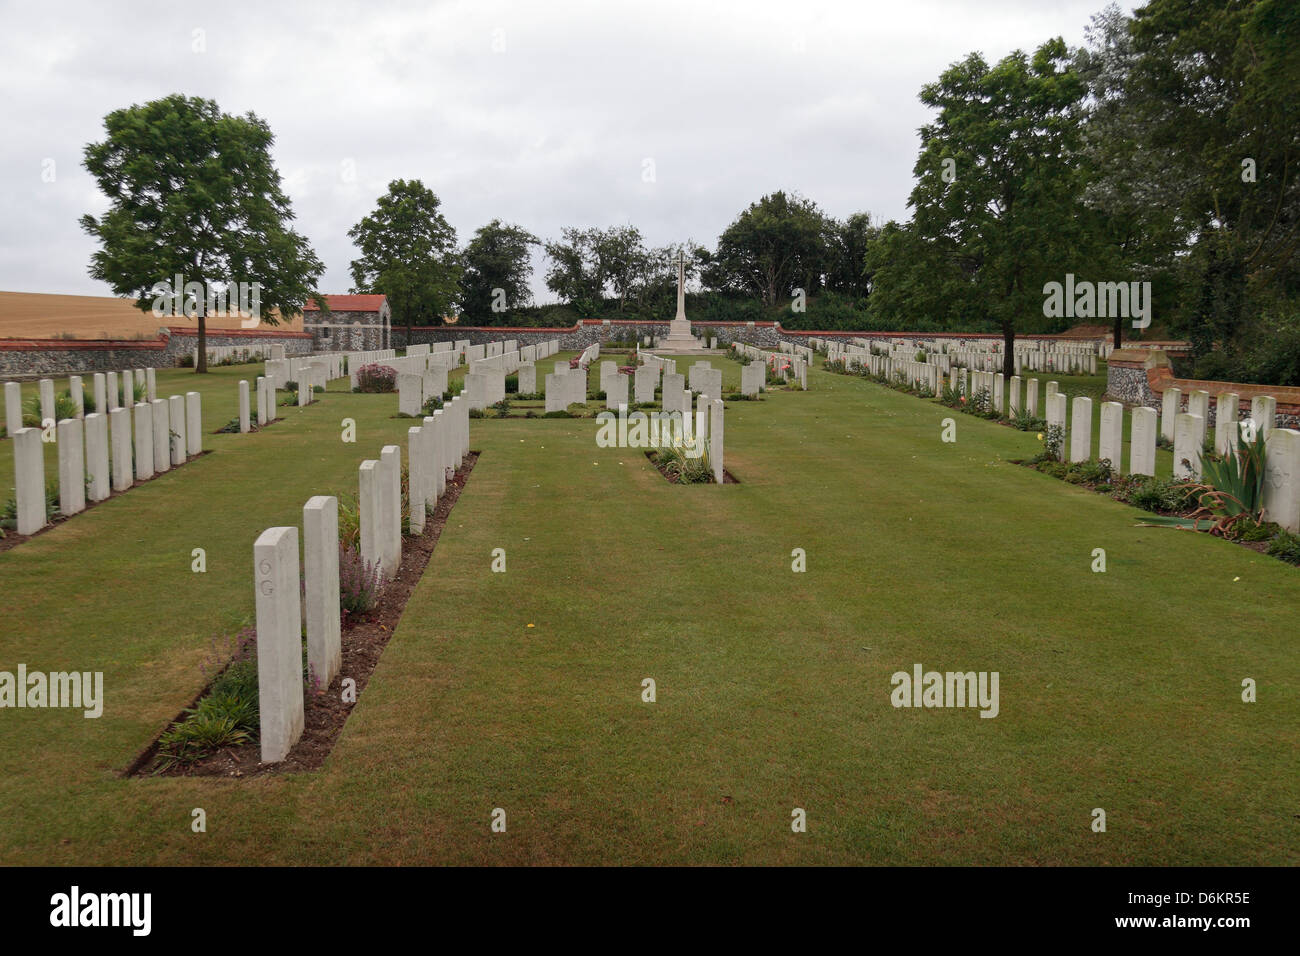 general view of the Quarry Cemetery, Montauban, Somme, France. - Stock Image